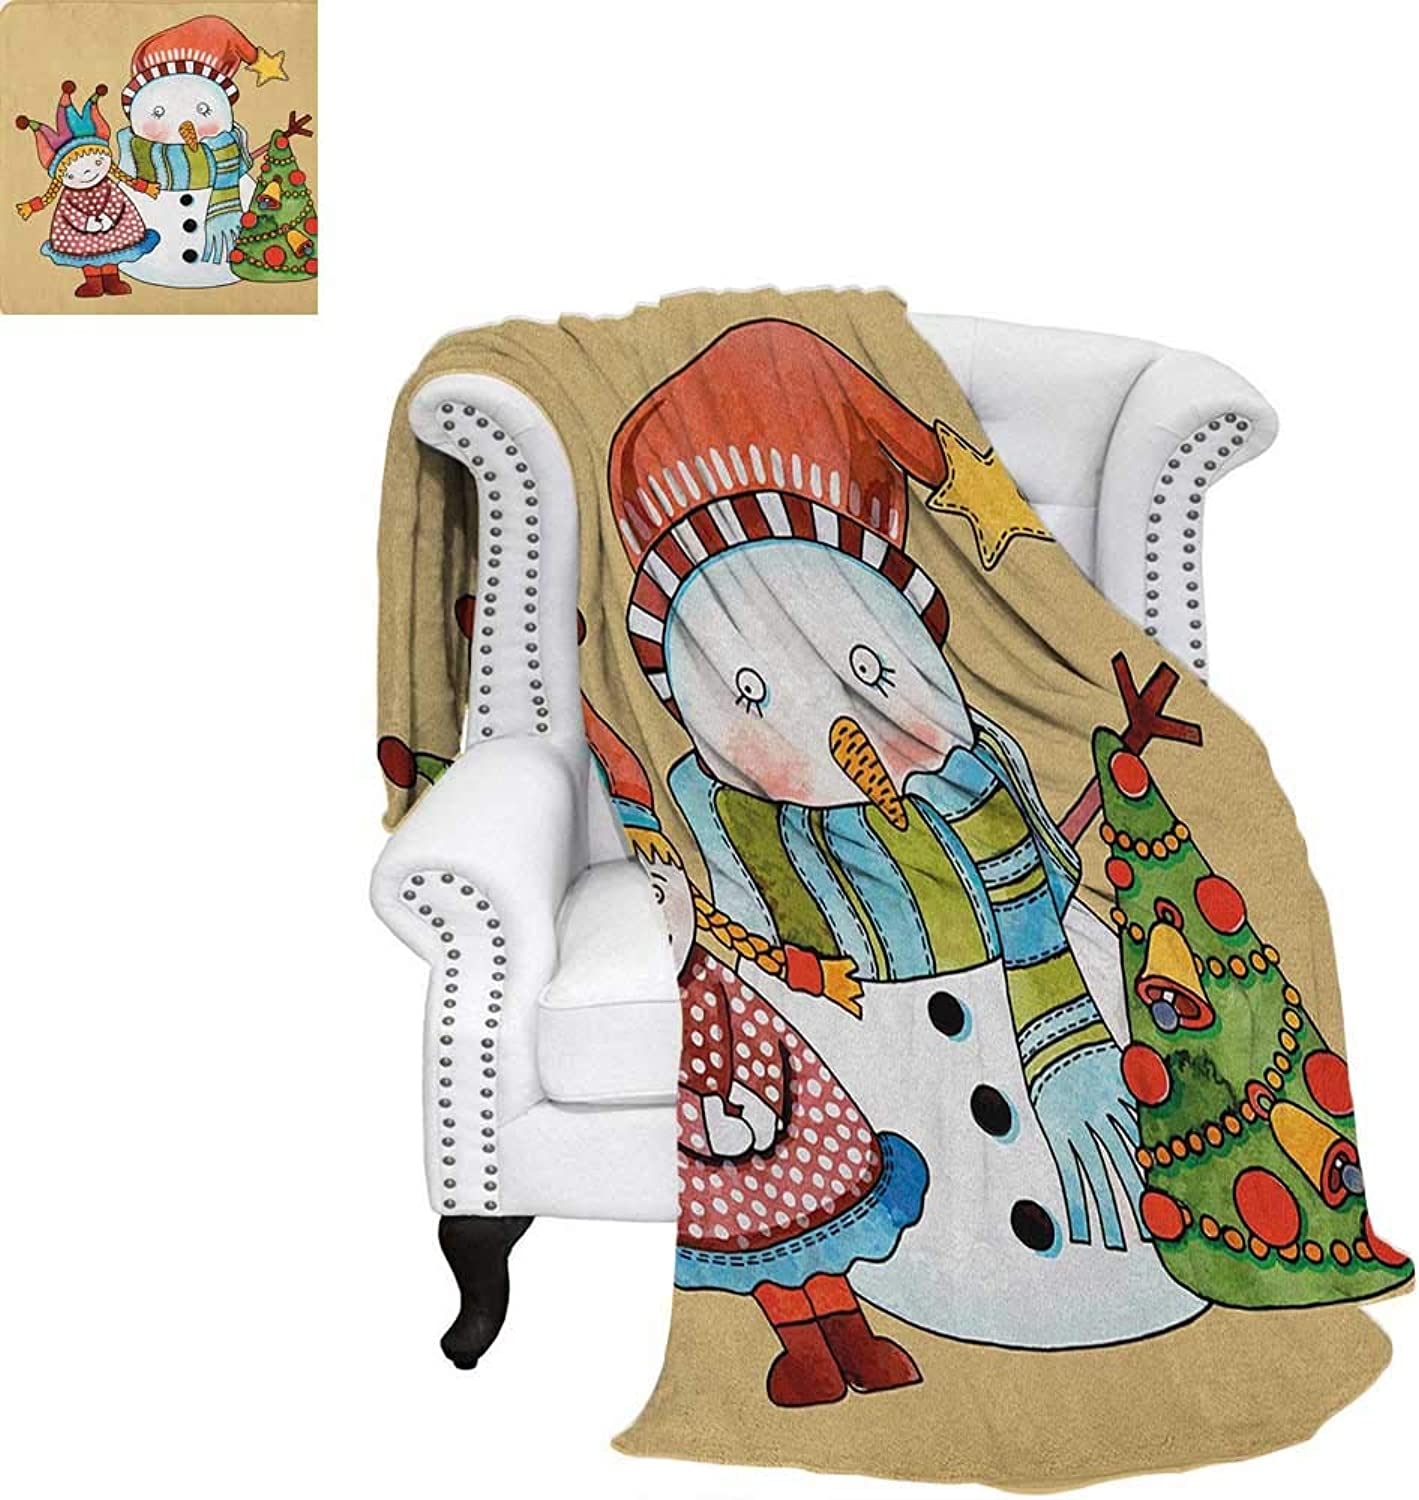 Christmassmall blanketCute Little Toy Girl Snowman and Xmas Tree in Watercolors Happy New Year Themethin Blanket 60 x50  Multicolor